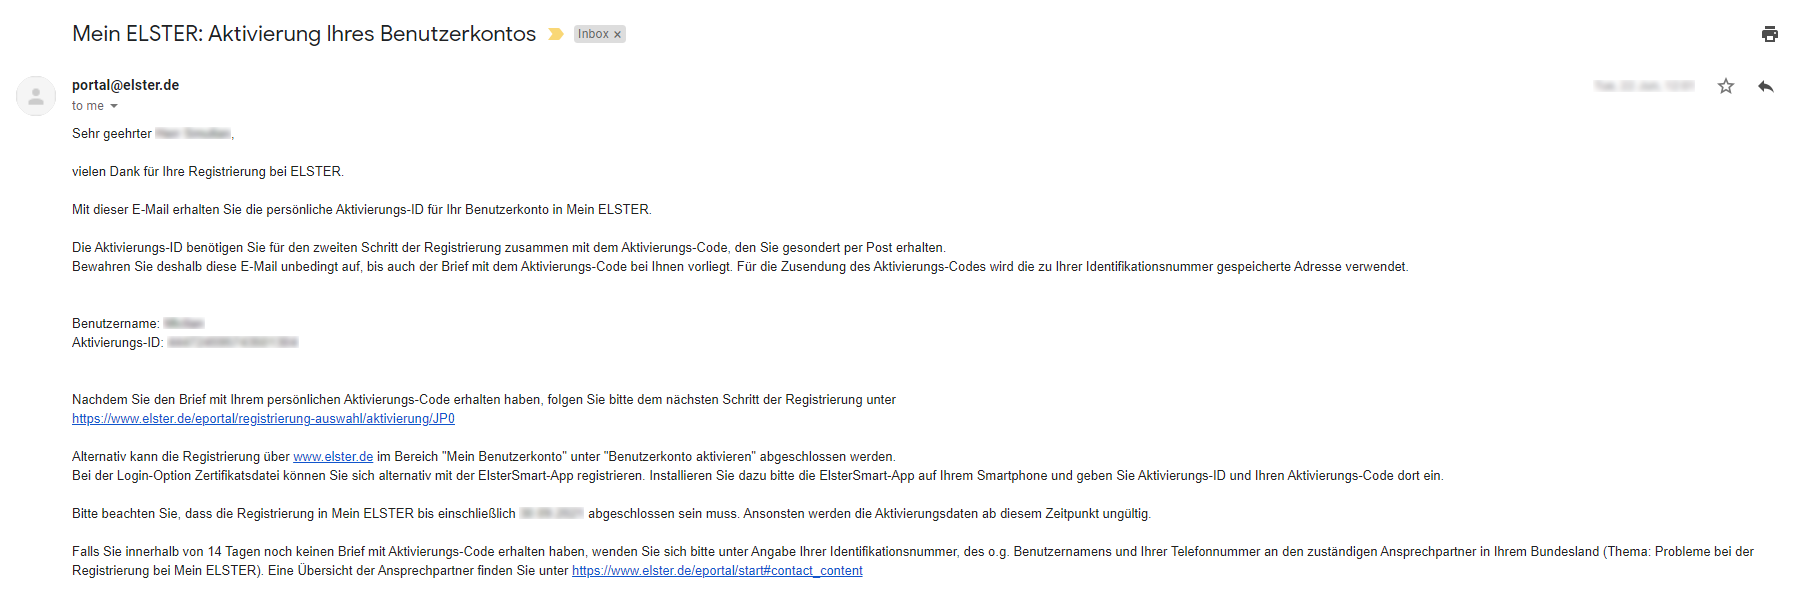 email with your ELSTER Activation ID (Aktivierungs-ID) and Username (Benutzername)